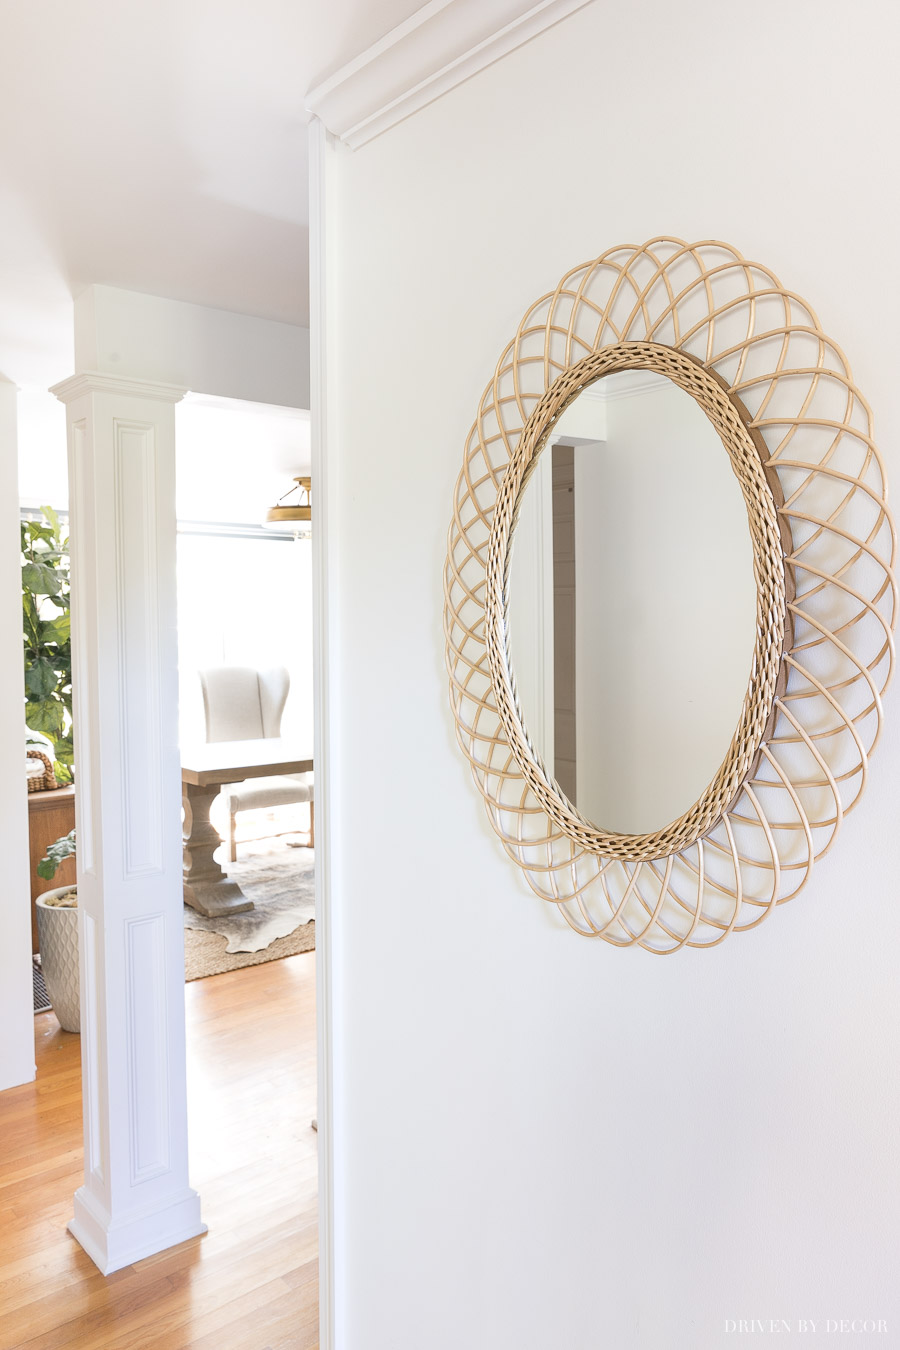 This oval rattan mirror from Drew Barrymore's Flower Home collection is a beauty! And so reasonably priced!